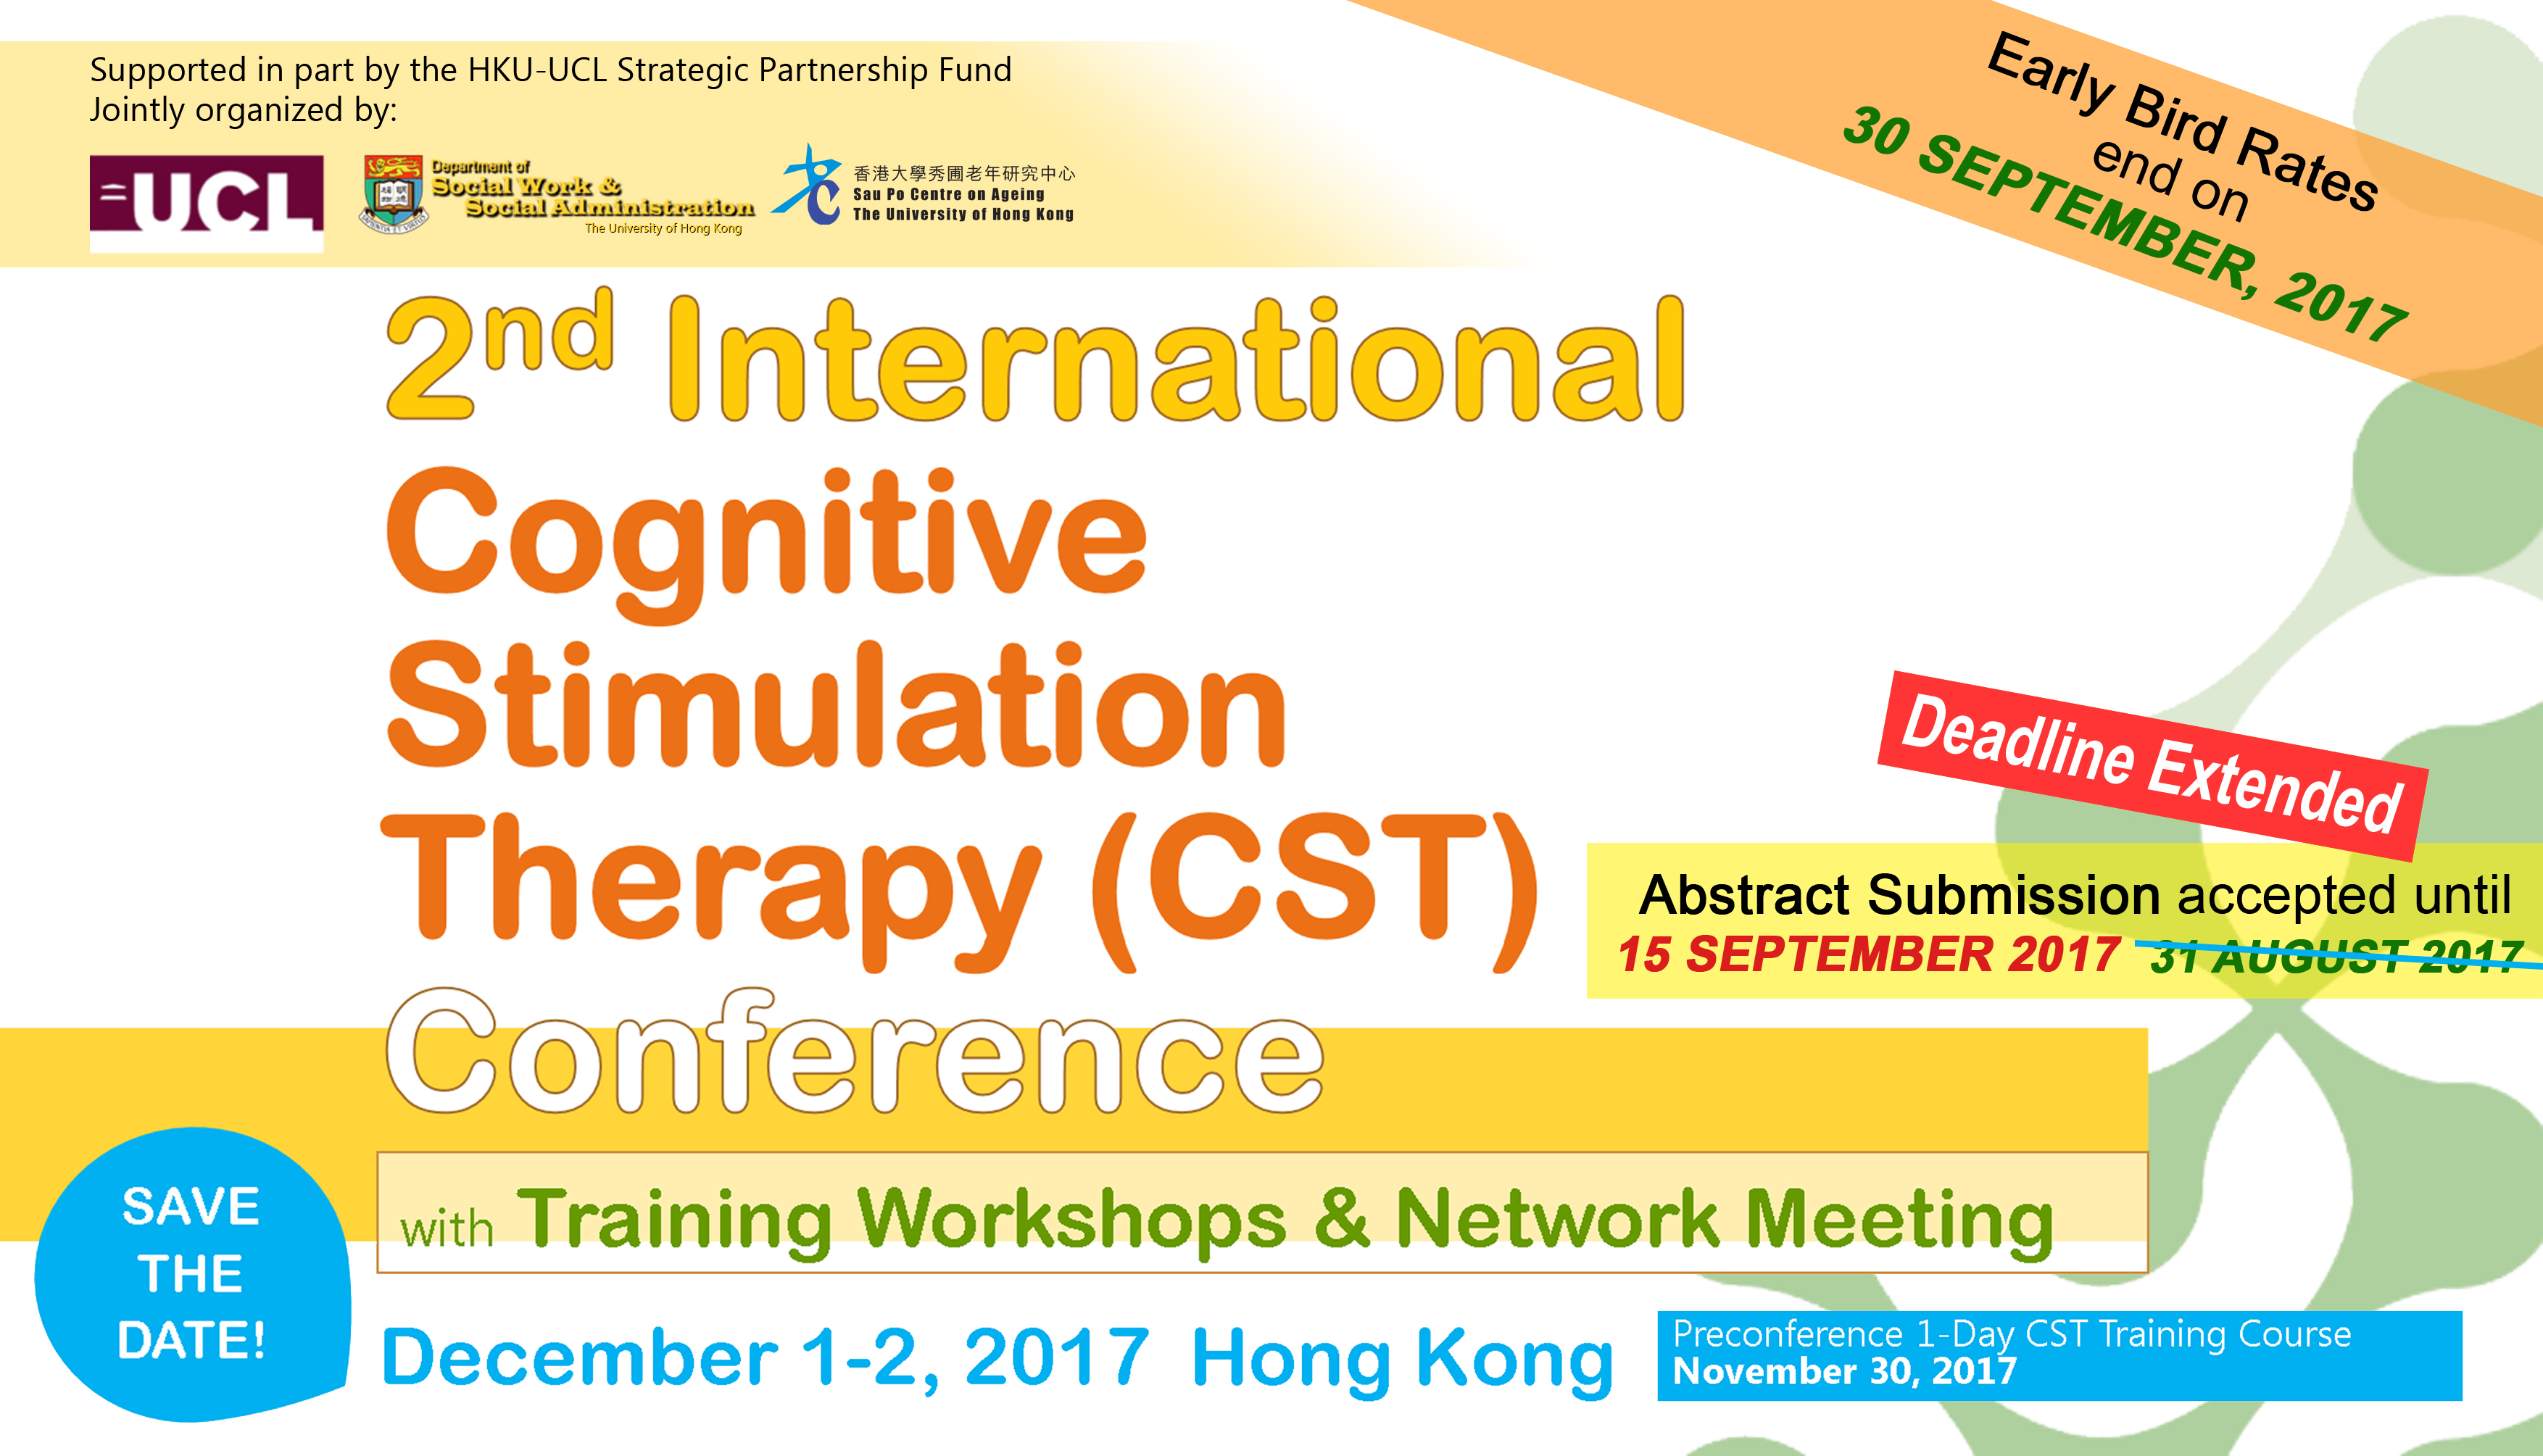 2nd International Cognitive Stimulation Therapy (CST) Conference